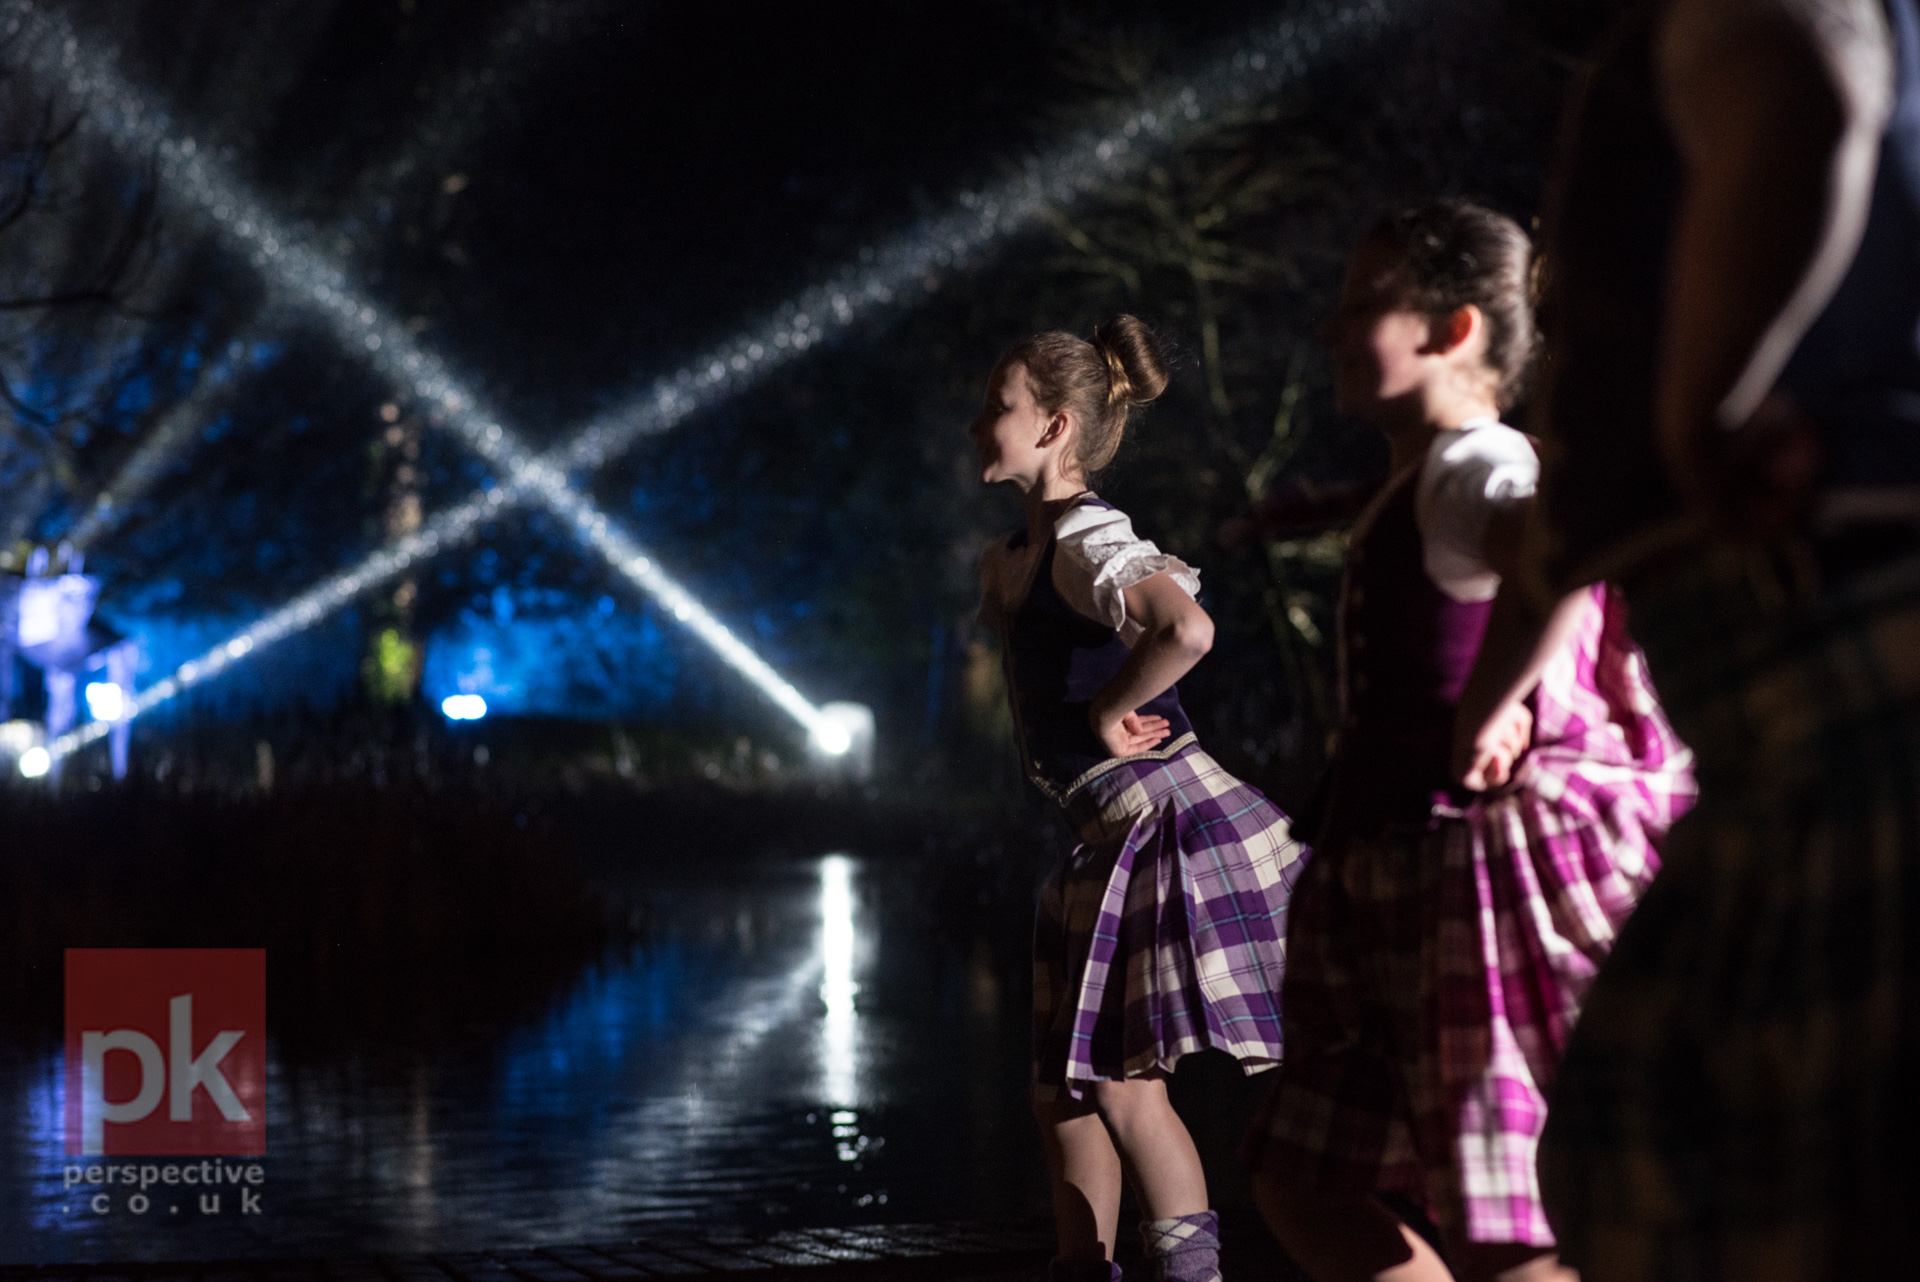 The highland dancers did a great job despite the less than favourable weather